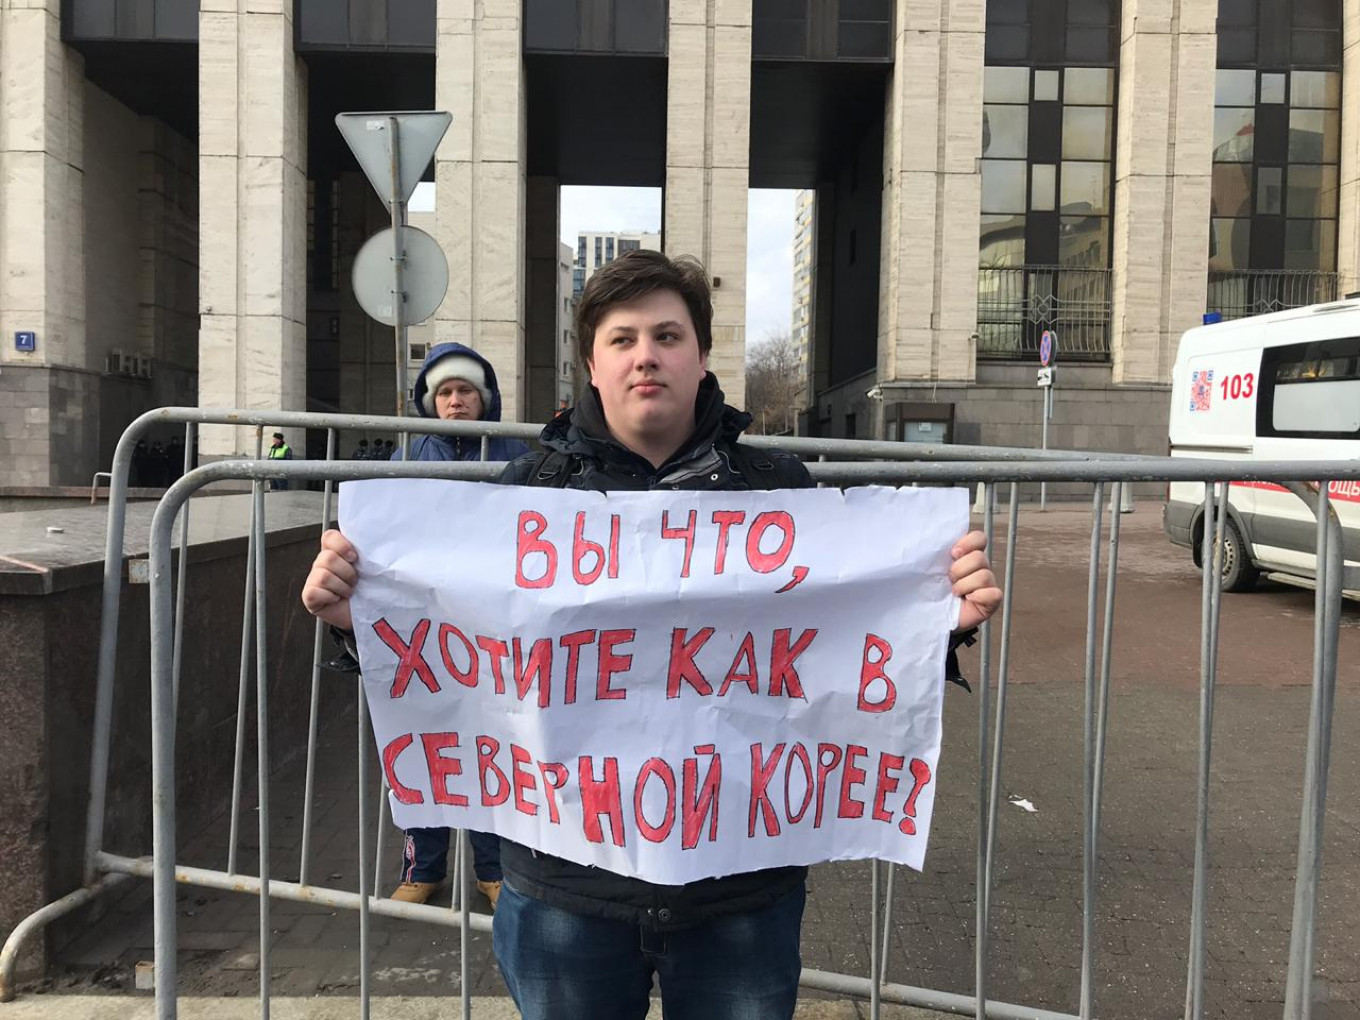 """Alexei, 22, said he would likely emigrate if Russia cut itself off from the global internet. Sign reads: """"You what, want it to be like in North Korea?"""" Evan Gershkovich / MT"""